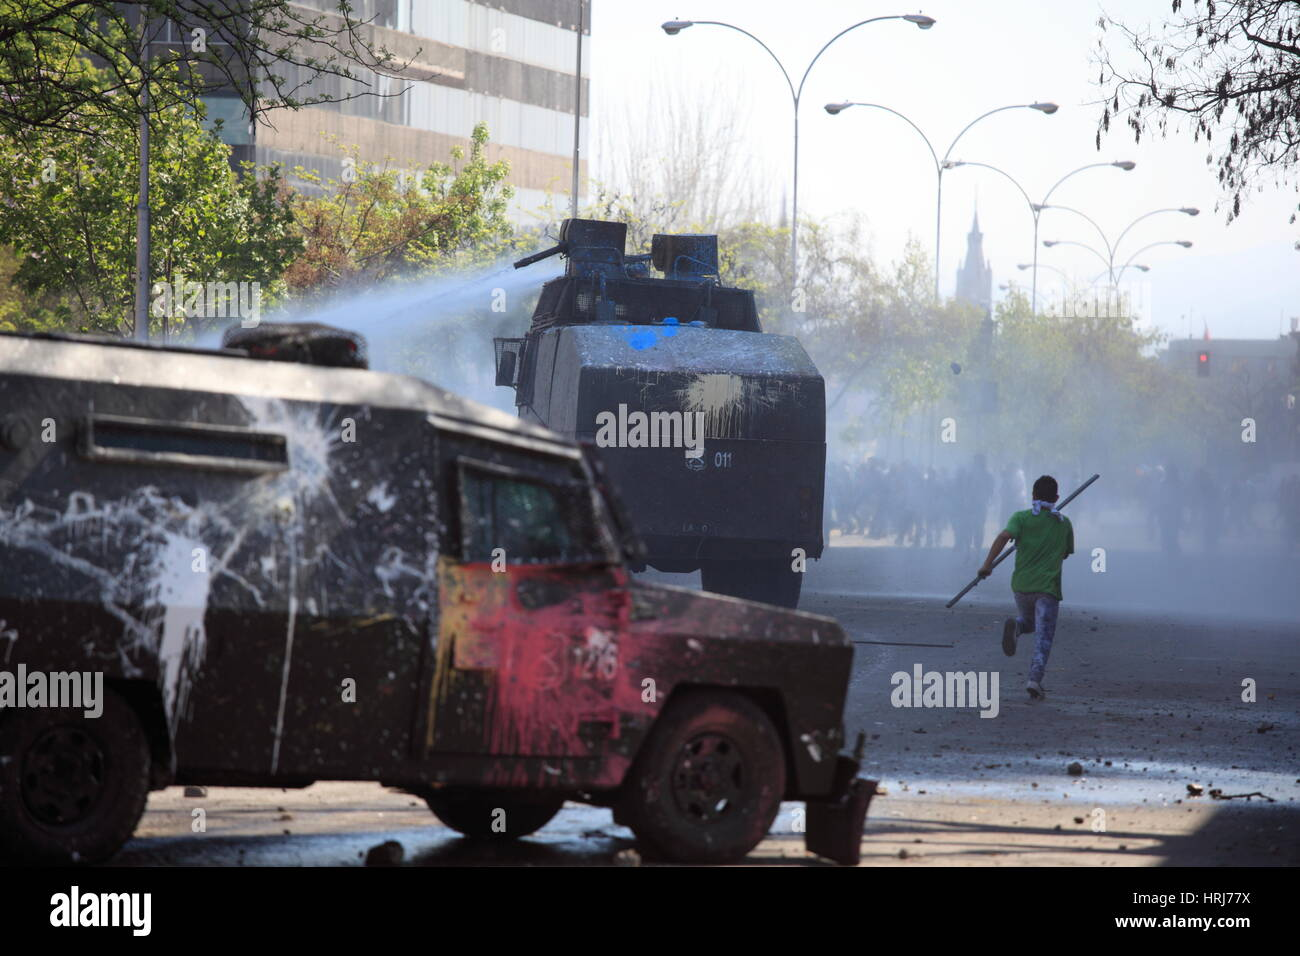 police water cannon disperse protesters,during a student strike in Santiago's Downtown, Chile. - Stock Image